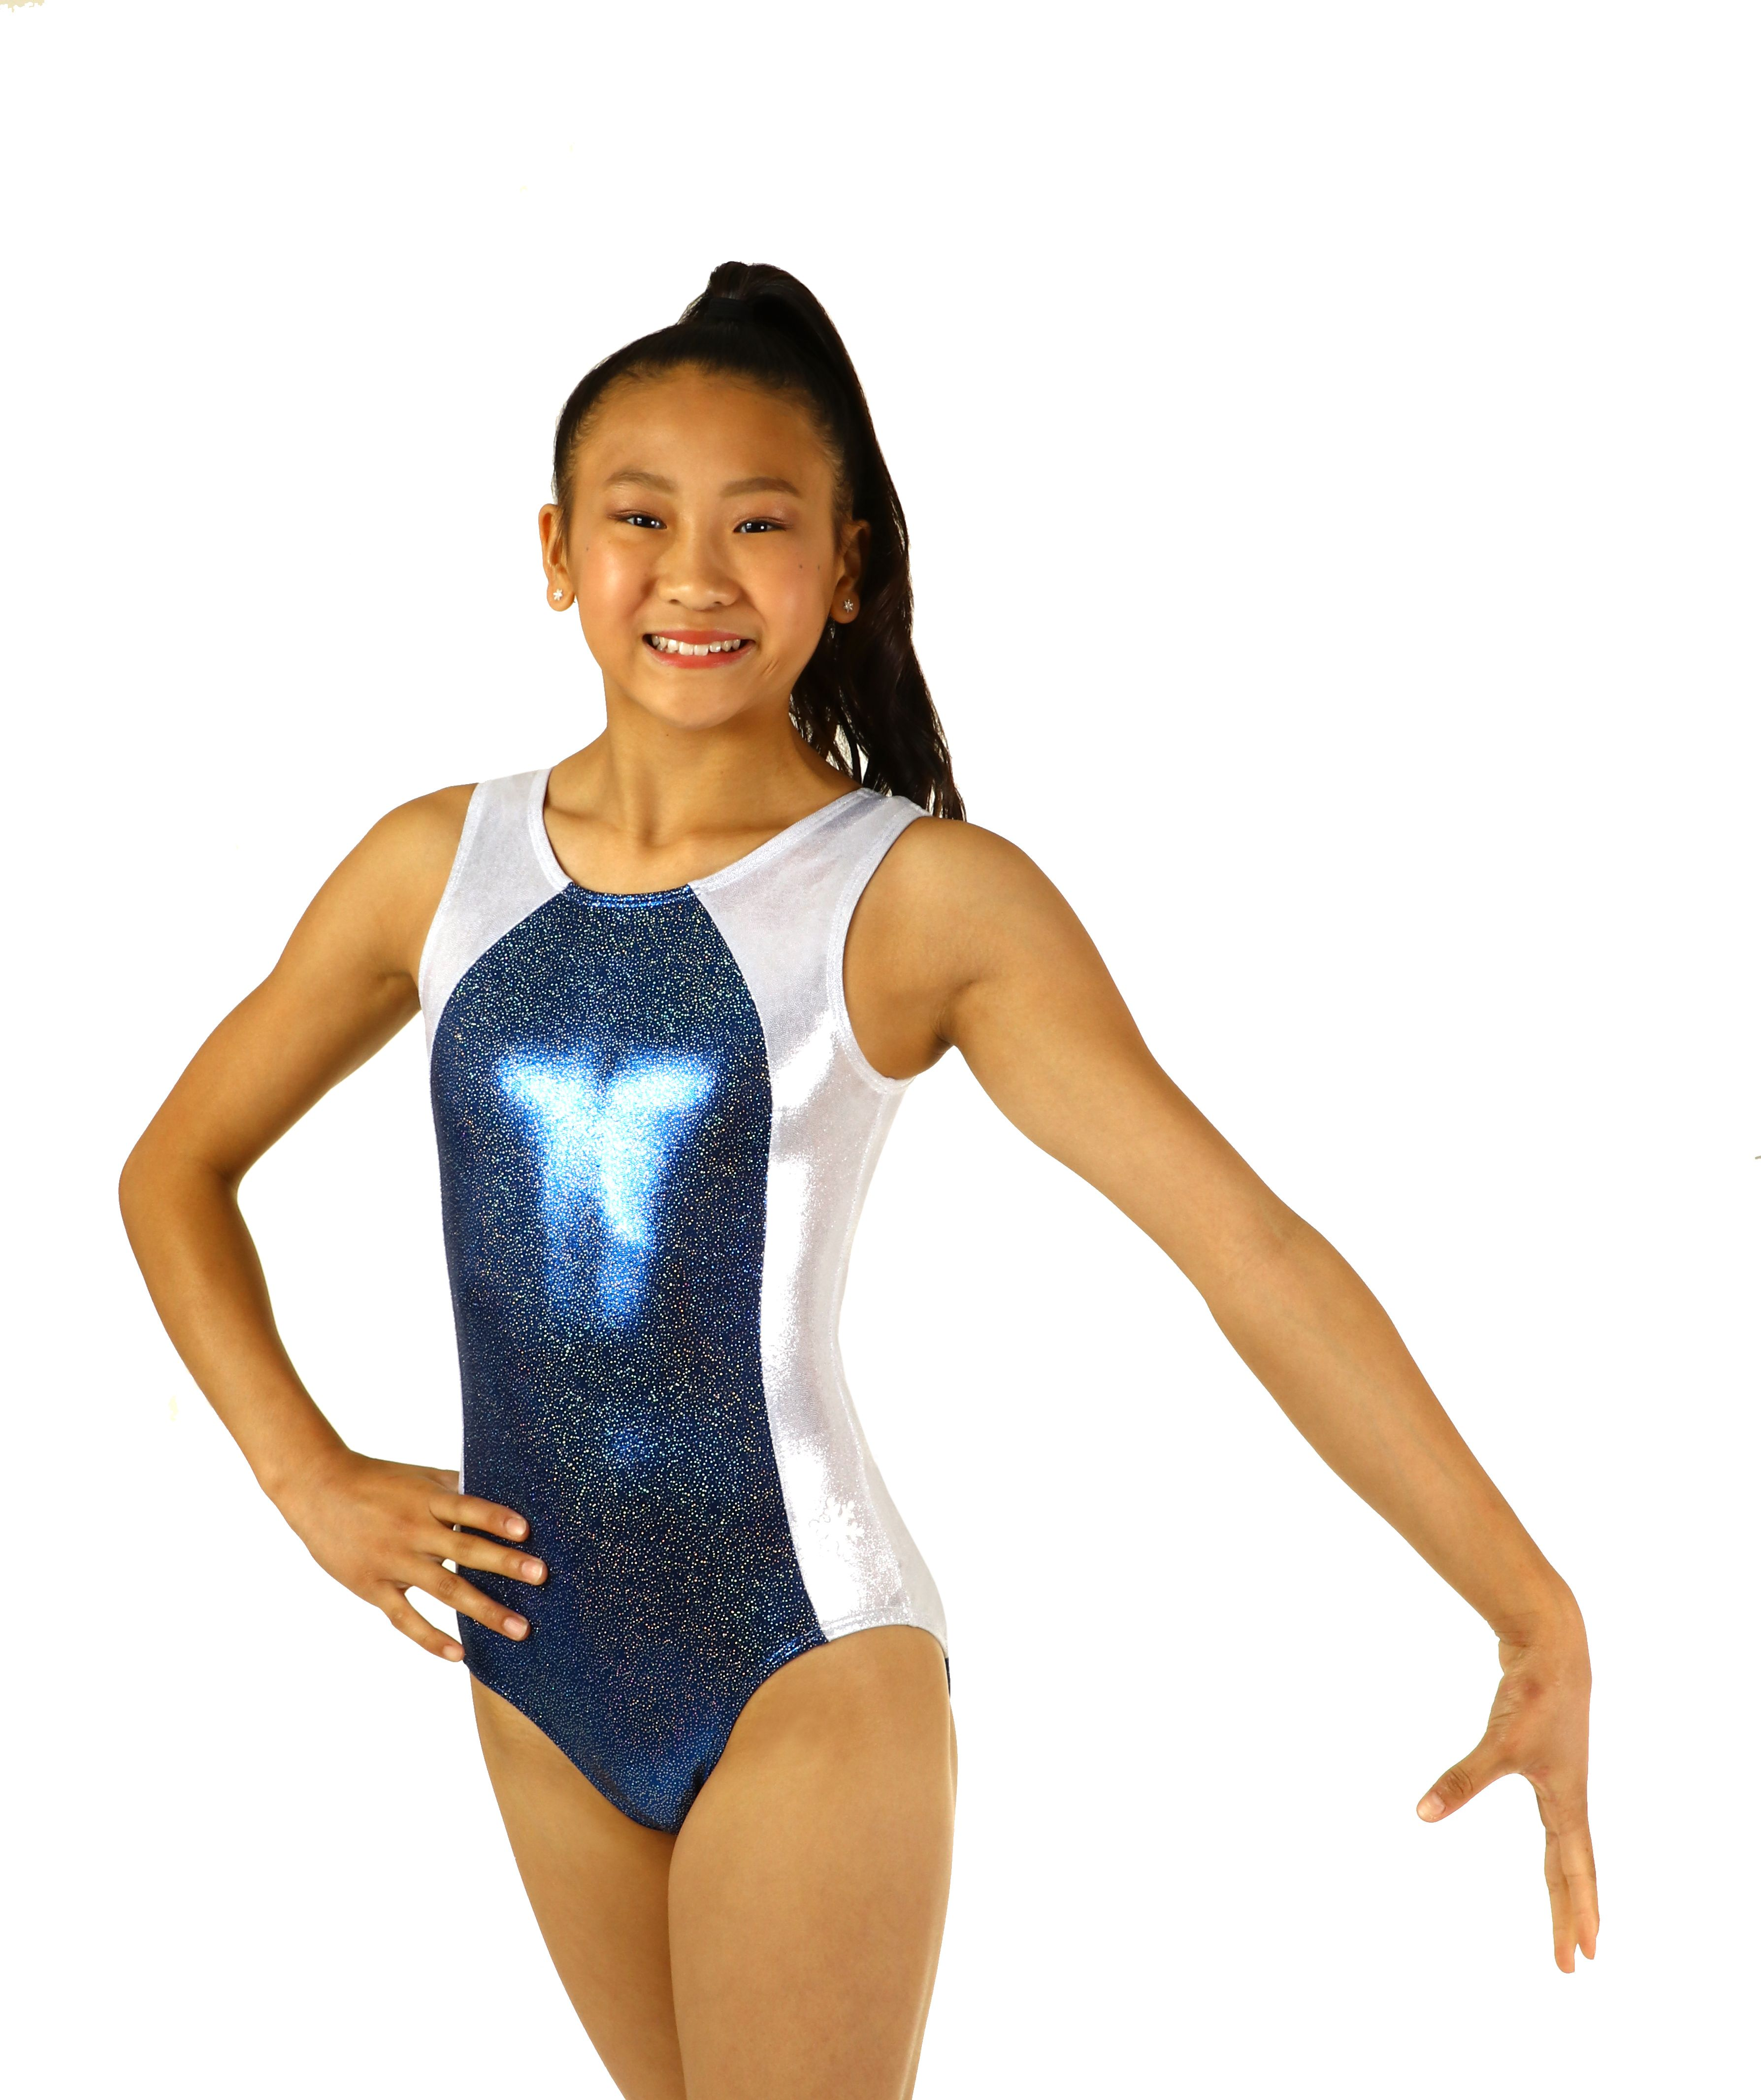 fc30e51a10f94 Sparkle like a precious gem in this classy gymnastics leotard. The deep  blue mystique is covered in silver sparkle for a shine like no other.